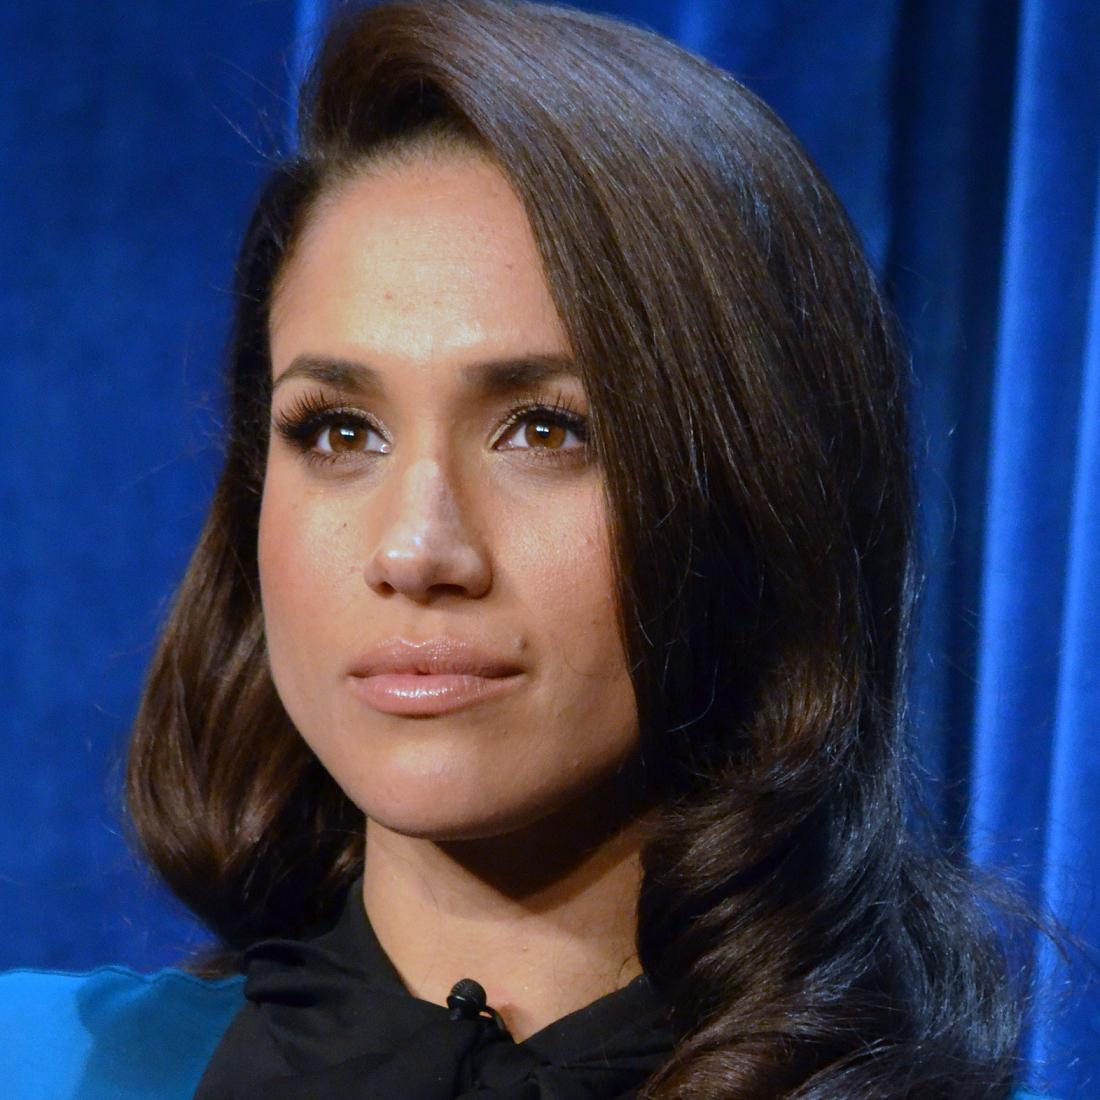 meghan markle age - photo #25